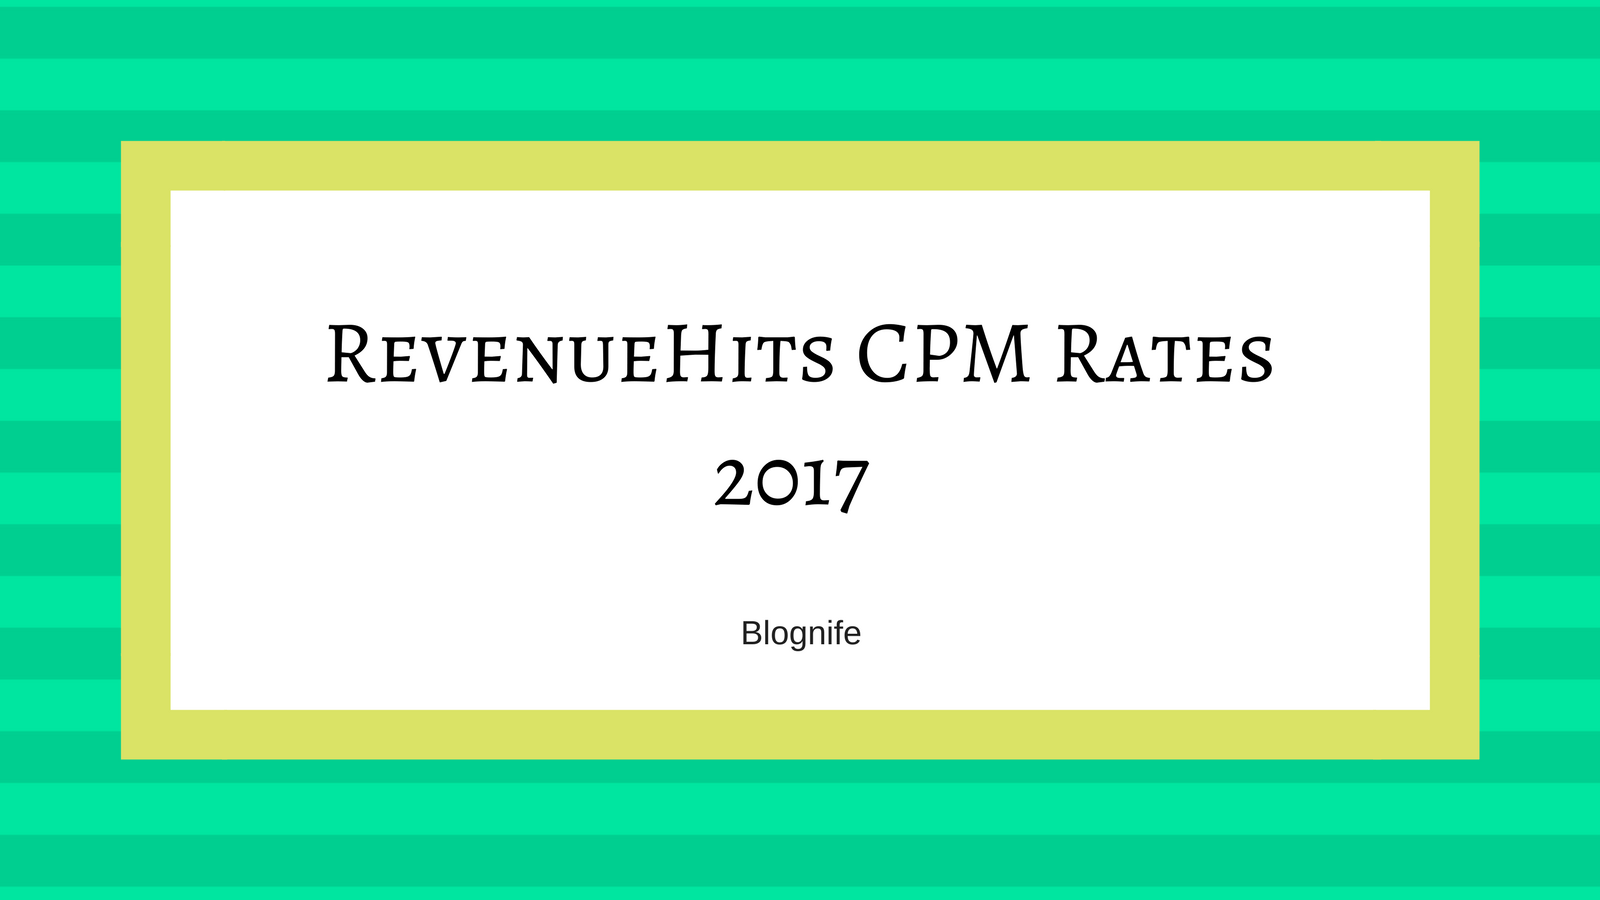 RevenueHits CPM Rates 2017